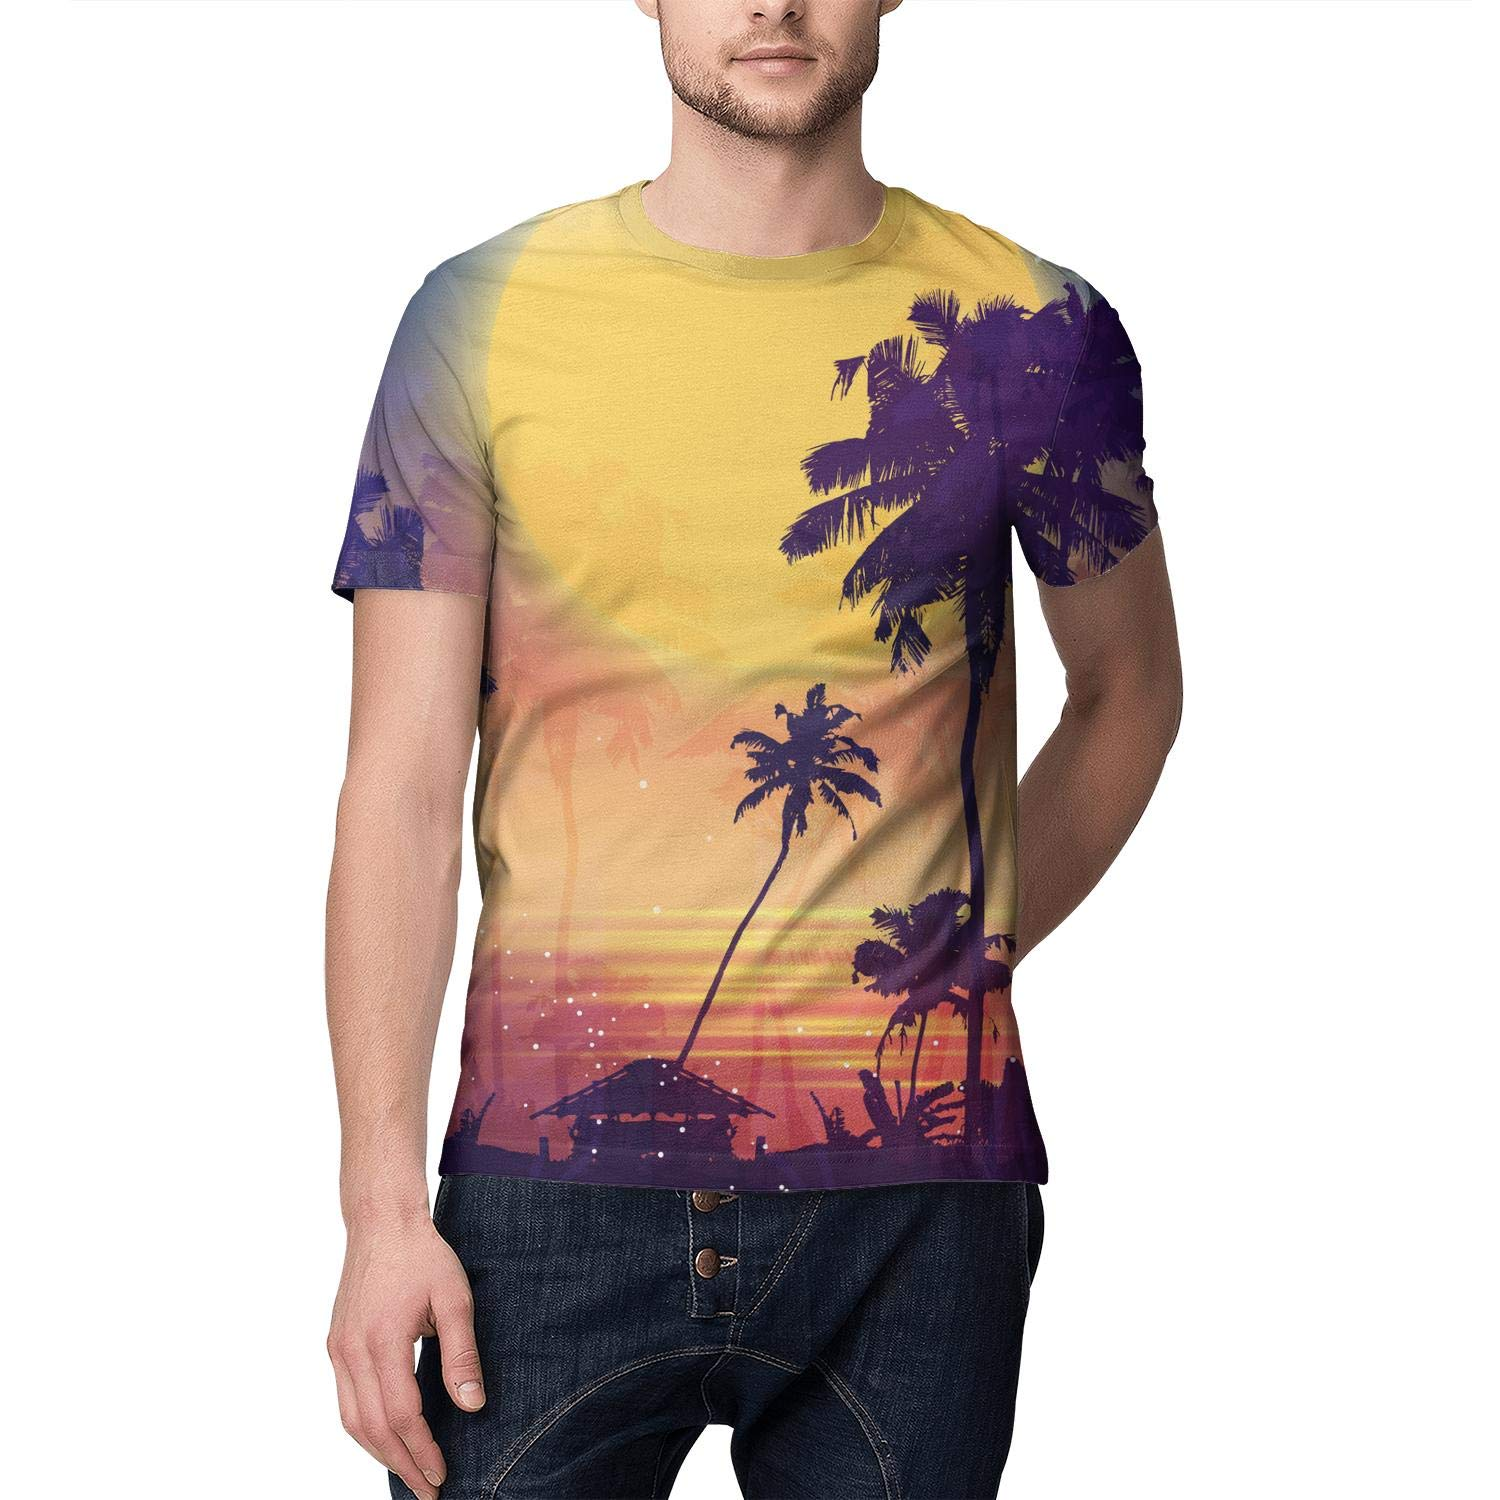 3D Print Man T Shirt Vintage ComfortSoft Sunset Palm Tree Painting Short Sleeve Shirts